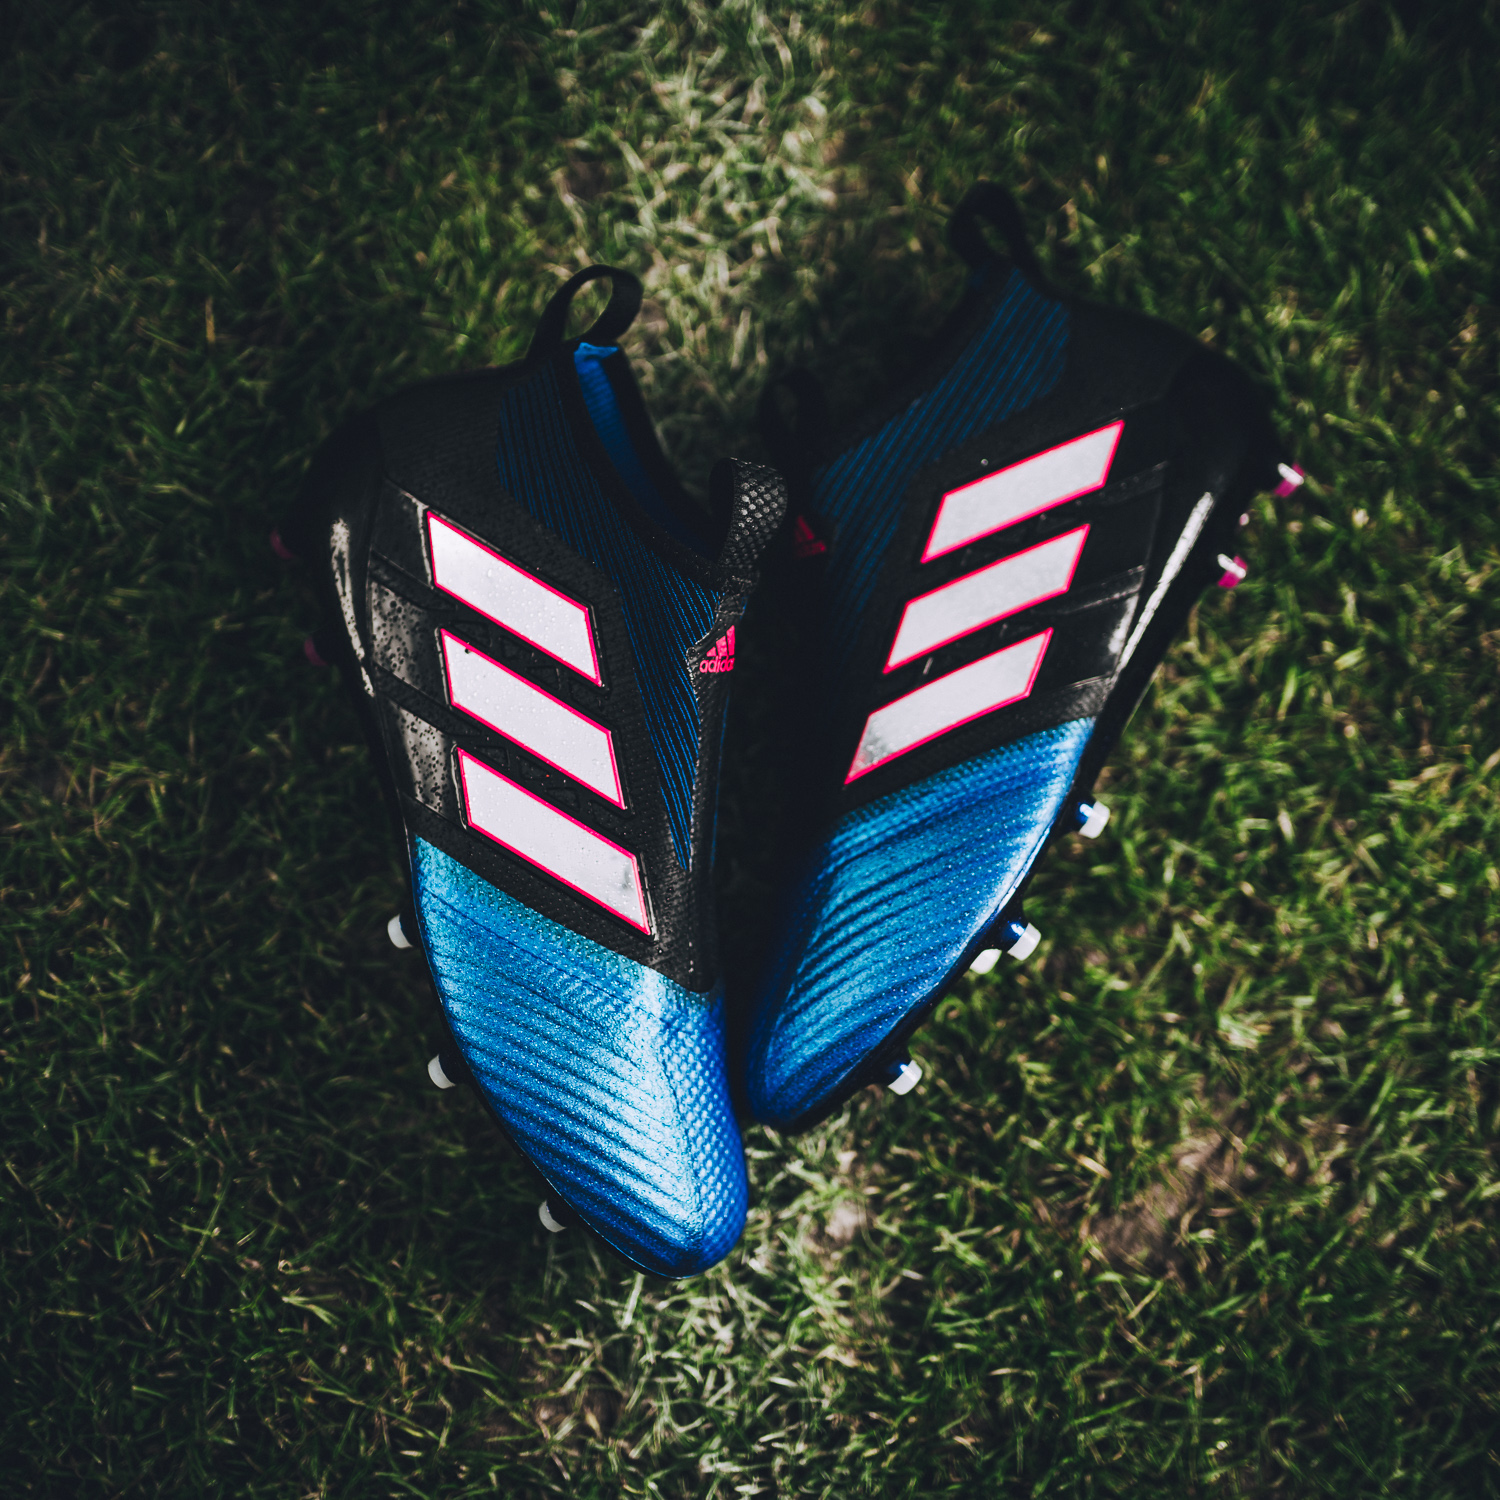 adidas Ace 17+ Purecontrol cleat 4